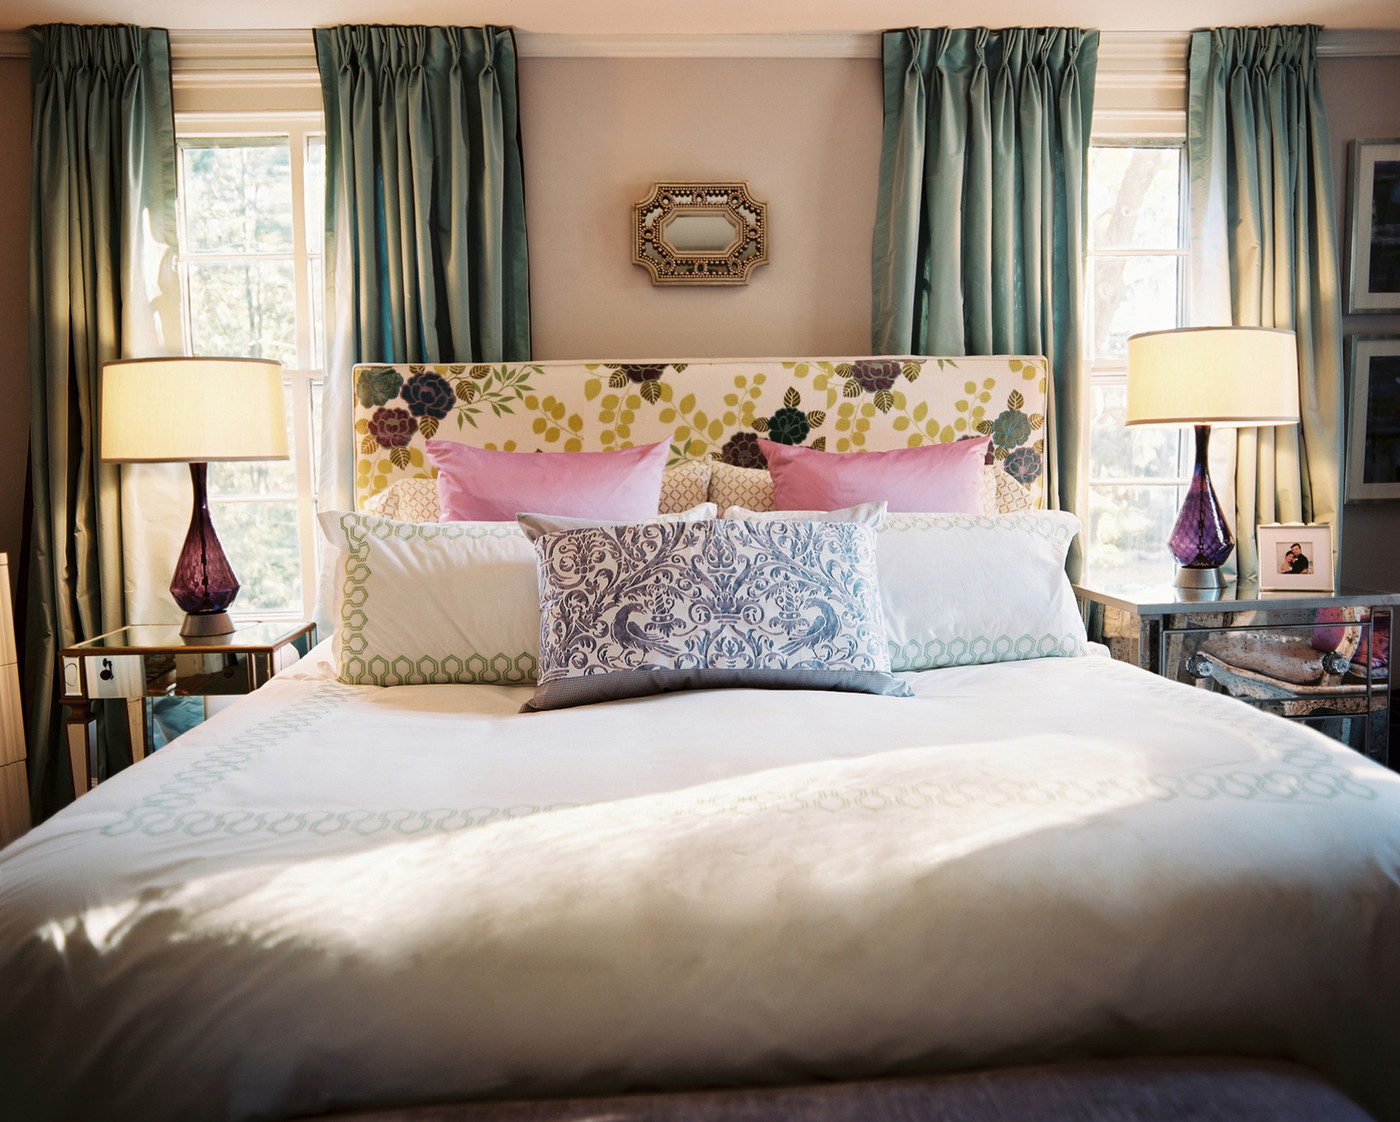 Eclectic Headboard 18 Romantic Bedroom Ideas Lonny